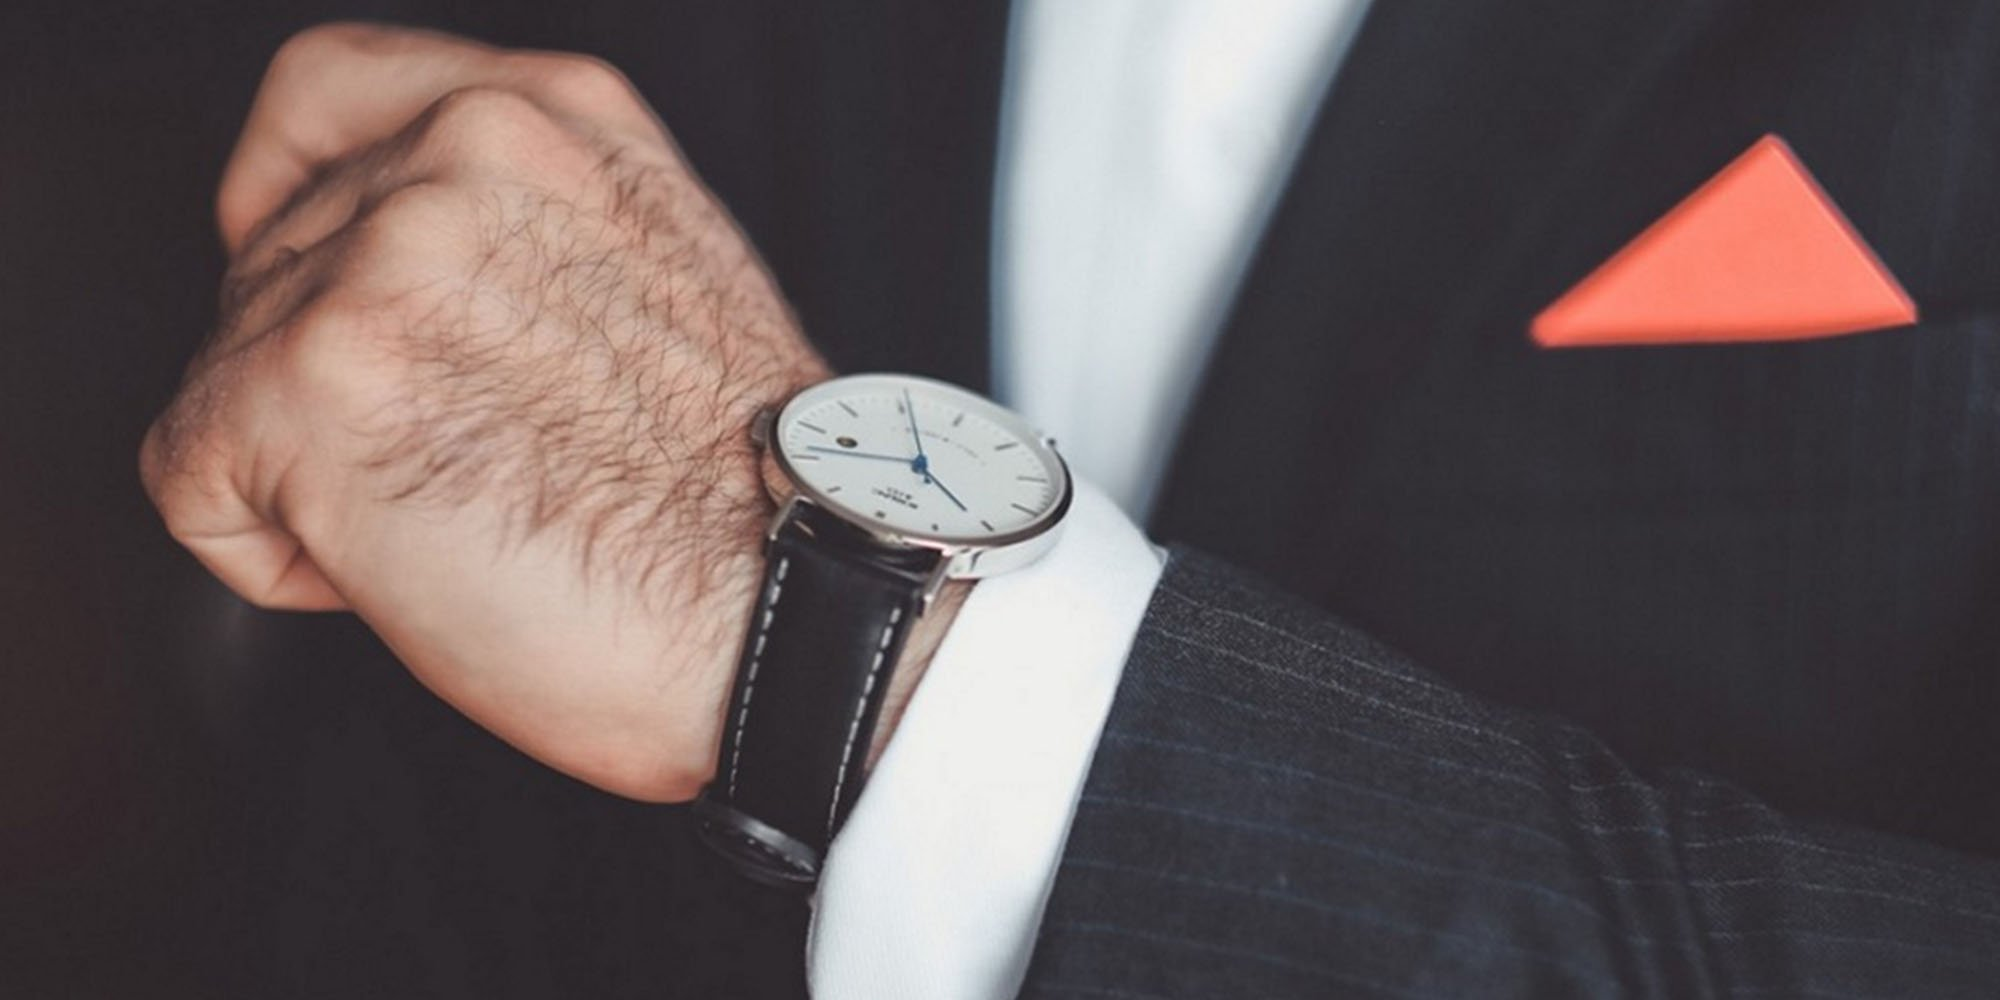 Top 5 Minimalist Watch Brands of 2018